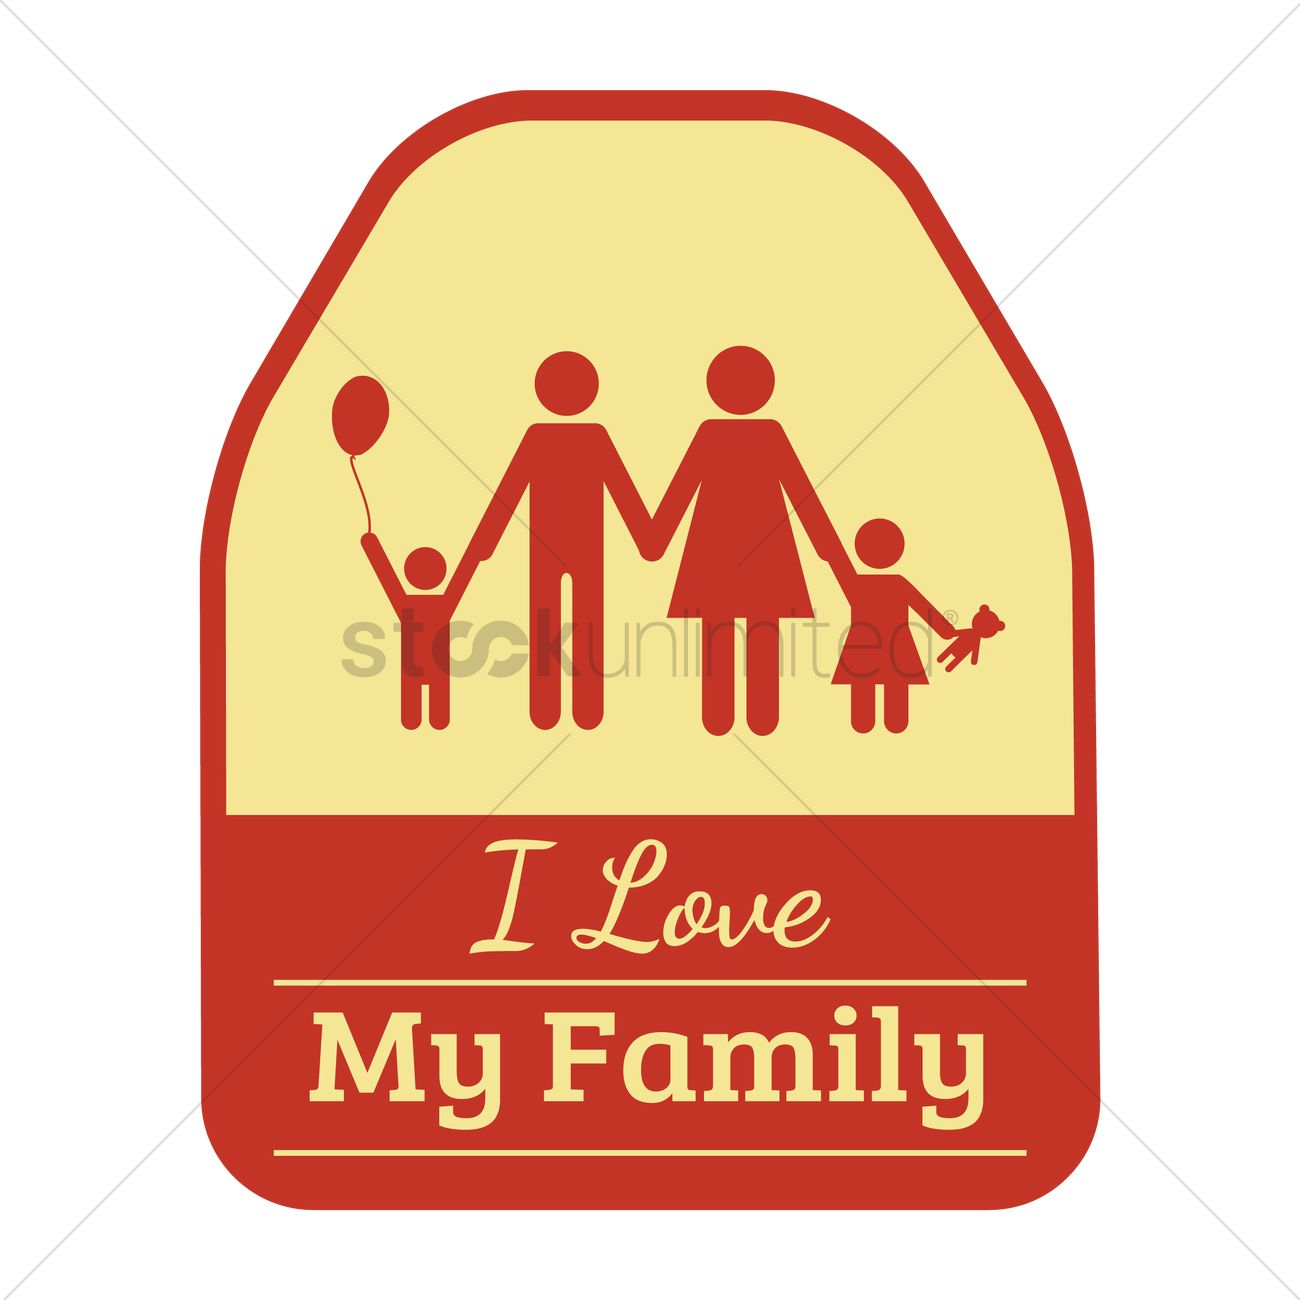 I Love My Family Sticker Vector Image 1795821 Stockunlimited